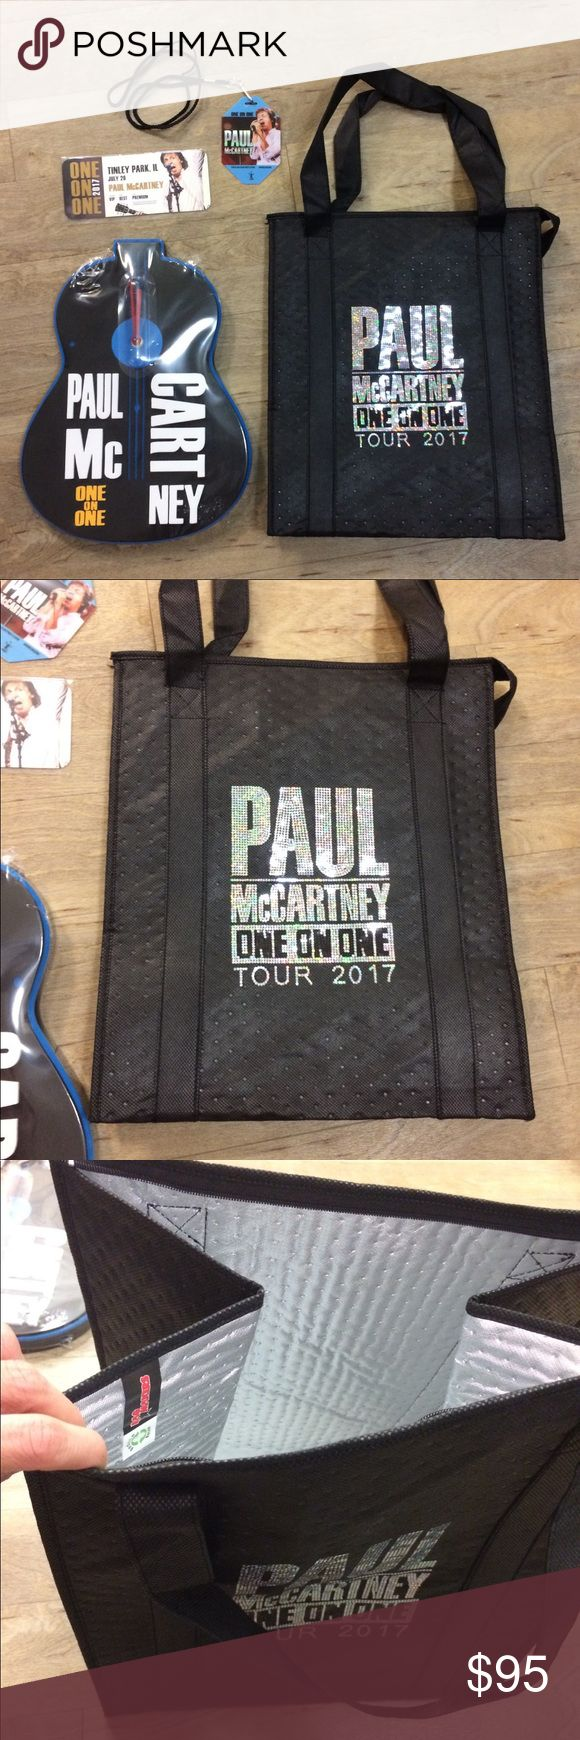 Brand new Paul McCartney VIP package tour 2017 Brand new Paul McCartney  2017 one on one tour VIP package Insulated cooler Guitar McCartney clock Limited edition ticket And backstage pass lanyard Price is negotiable as long as offer is reasonable Check out my other listings bundle and save! Other